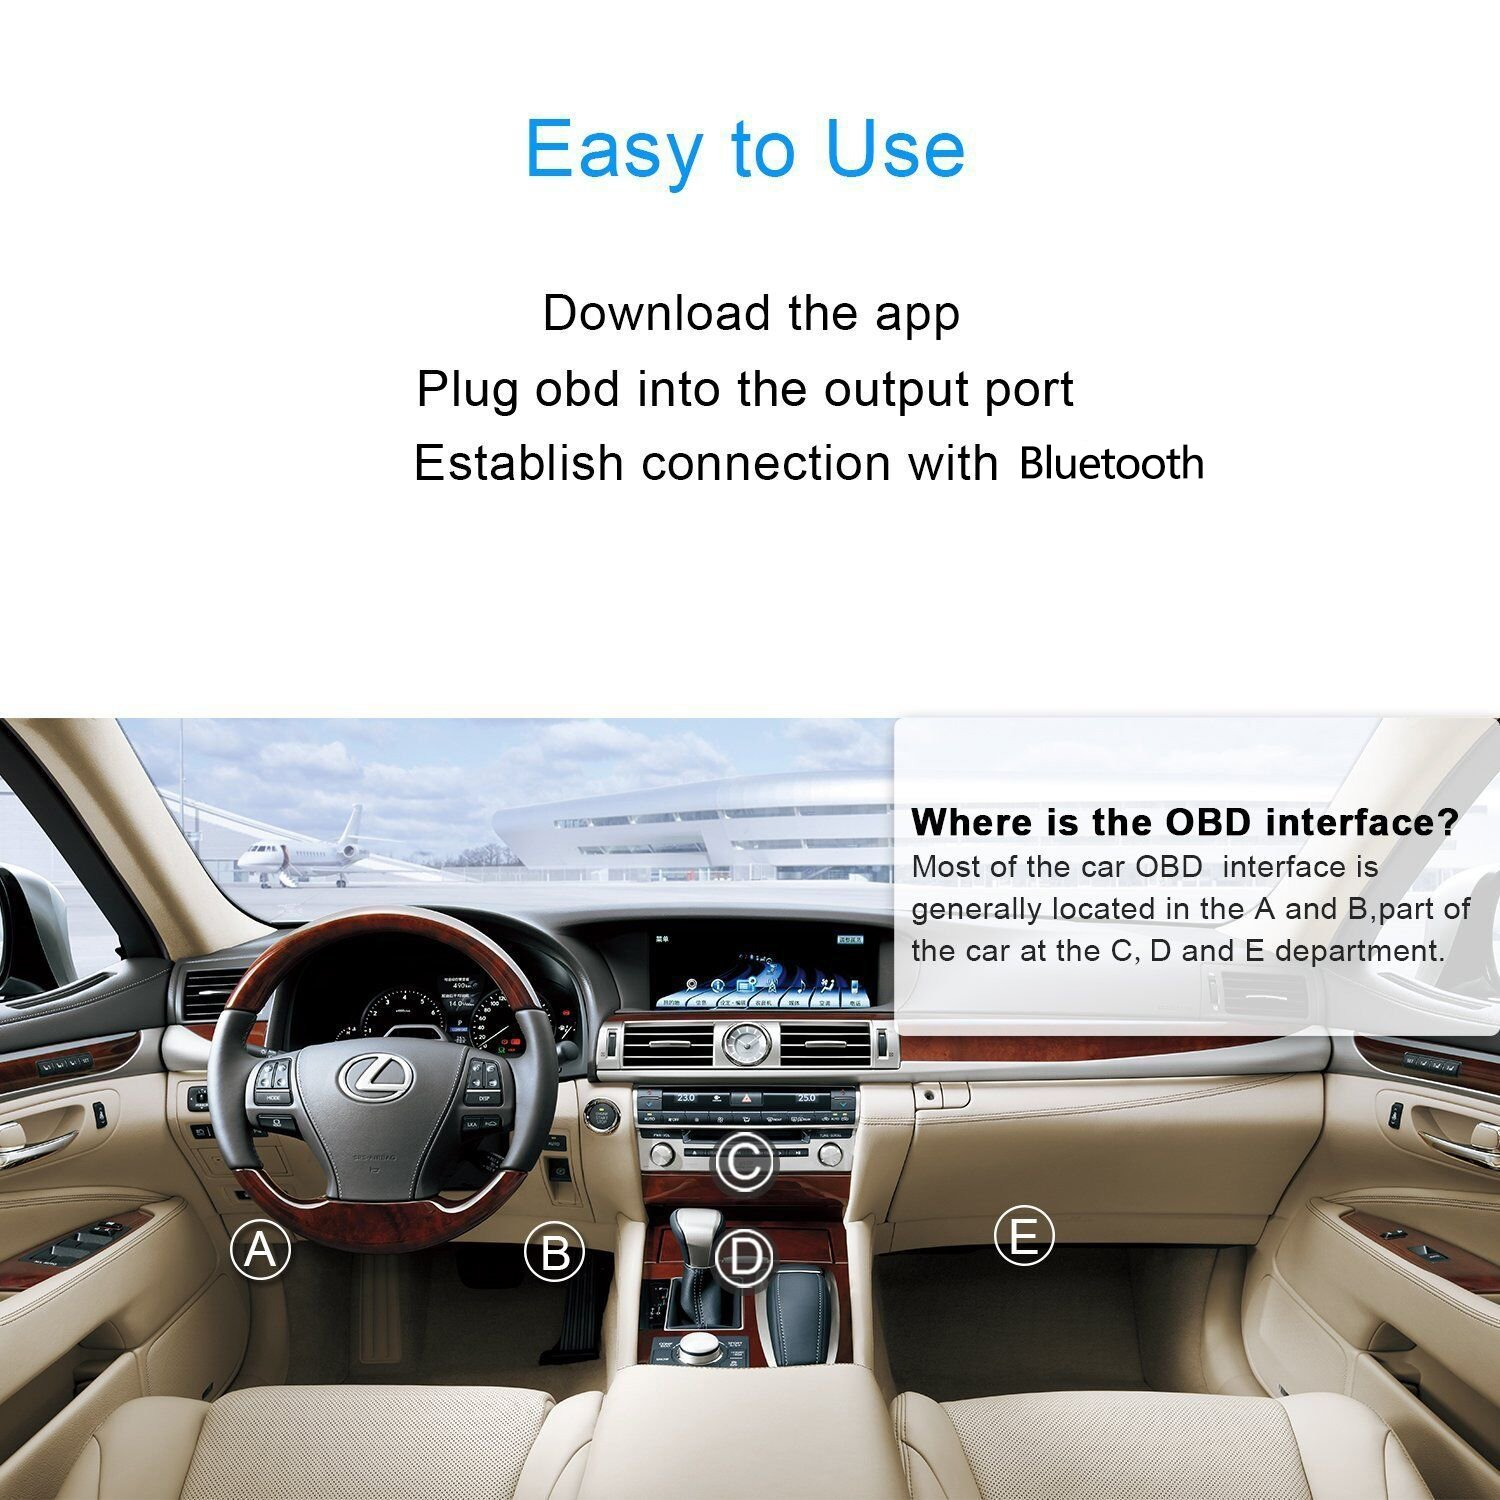 Car Bluetooth OBDII Scan Tool ELM327 Bluetooth Foseal Scanner Adapter Check Engine Diagnostic Tool for Android ( 24K80 Chin) with a Mobile Phone Stand (Bluetooth Scan Tool)